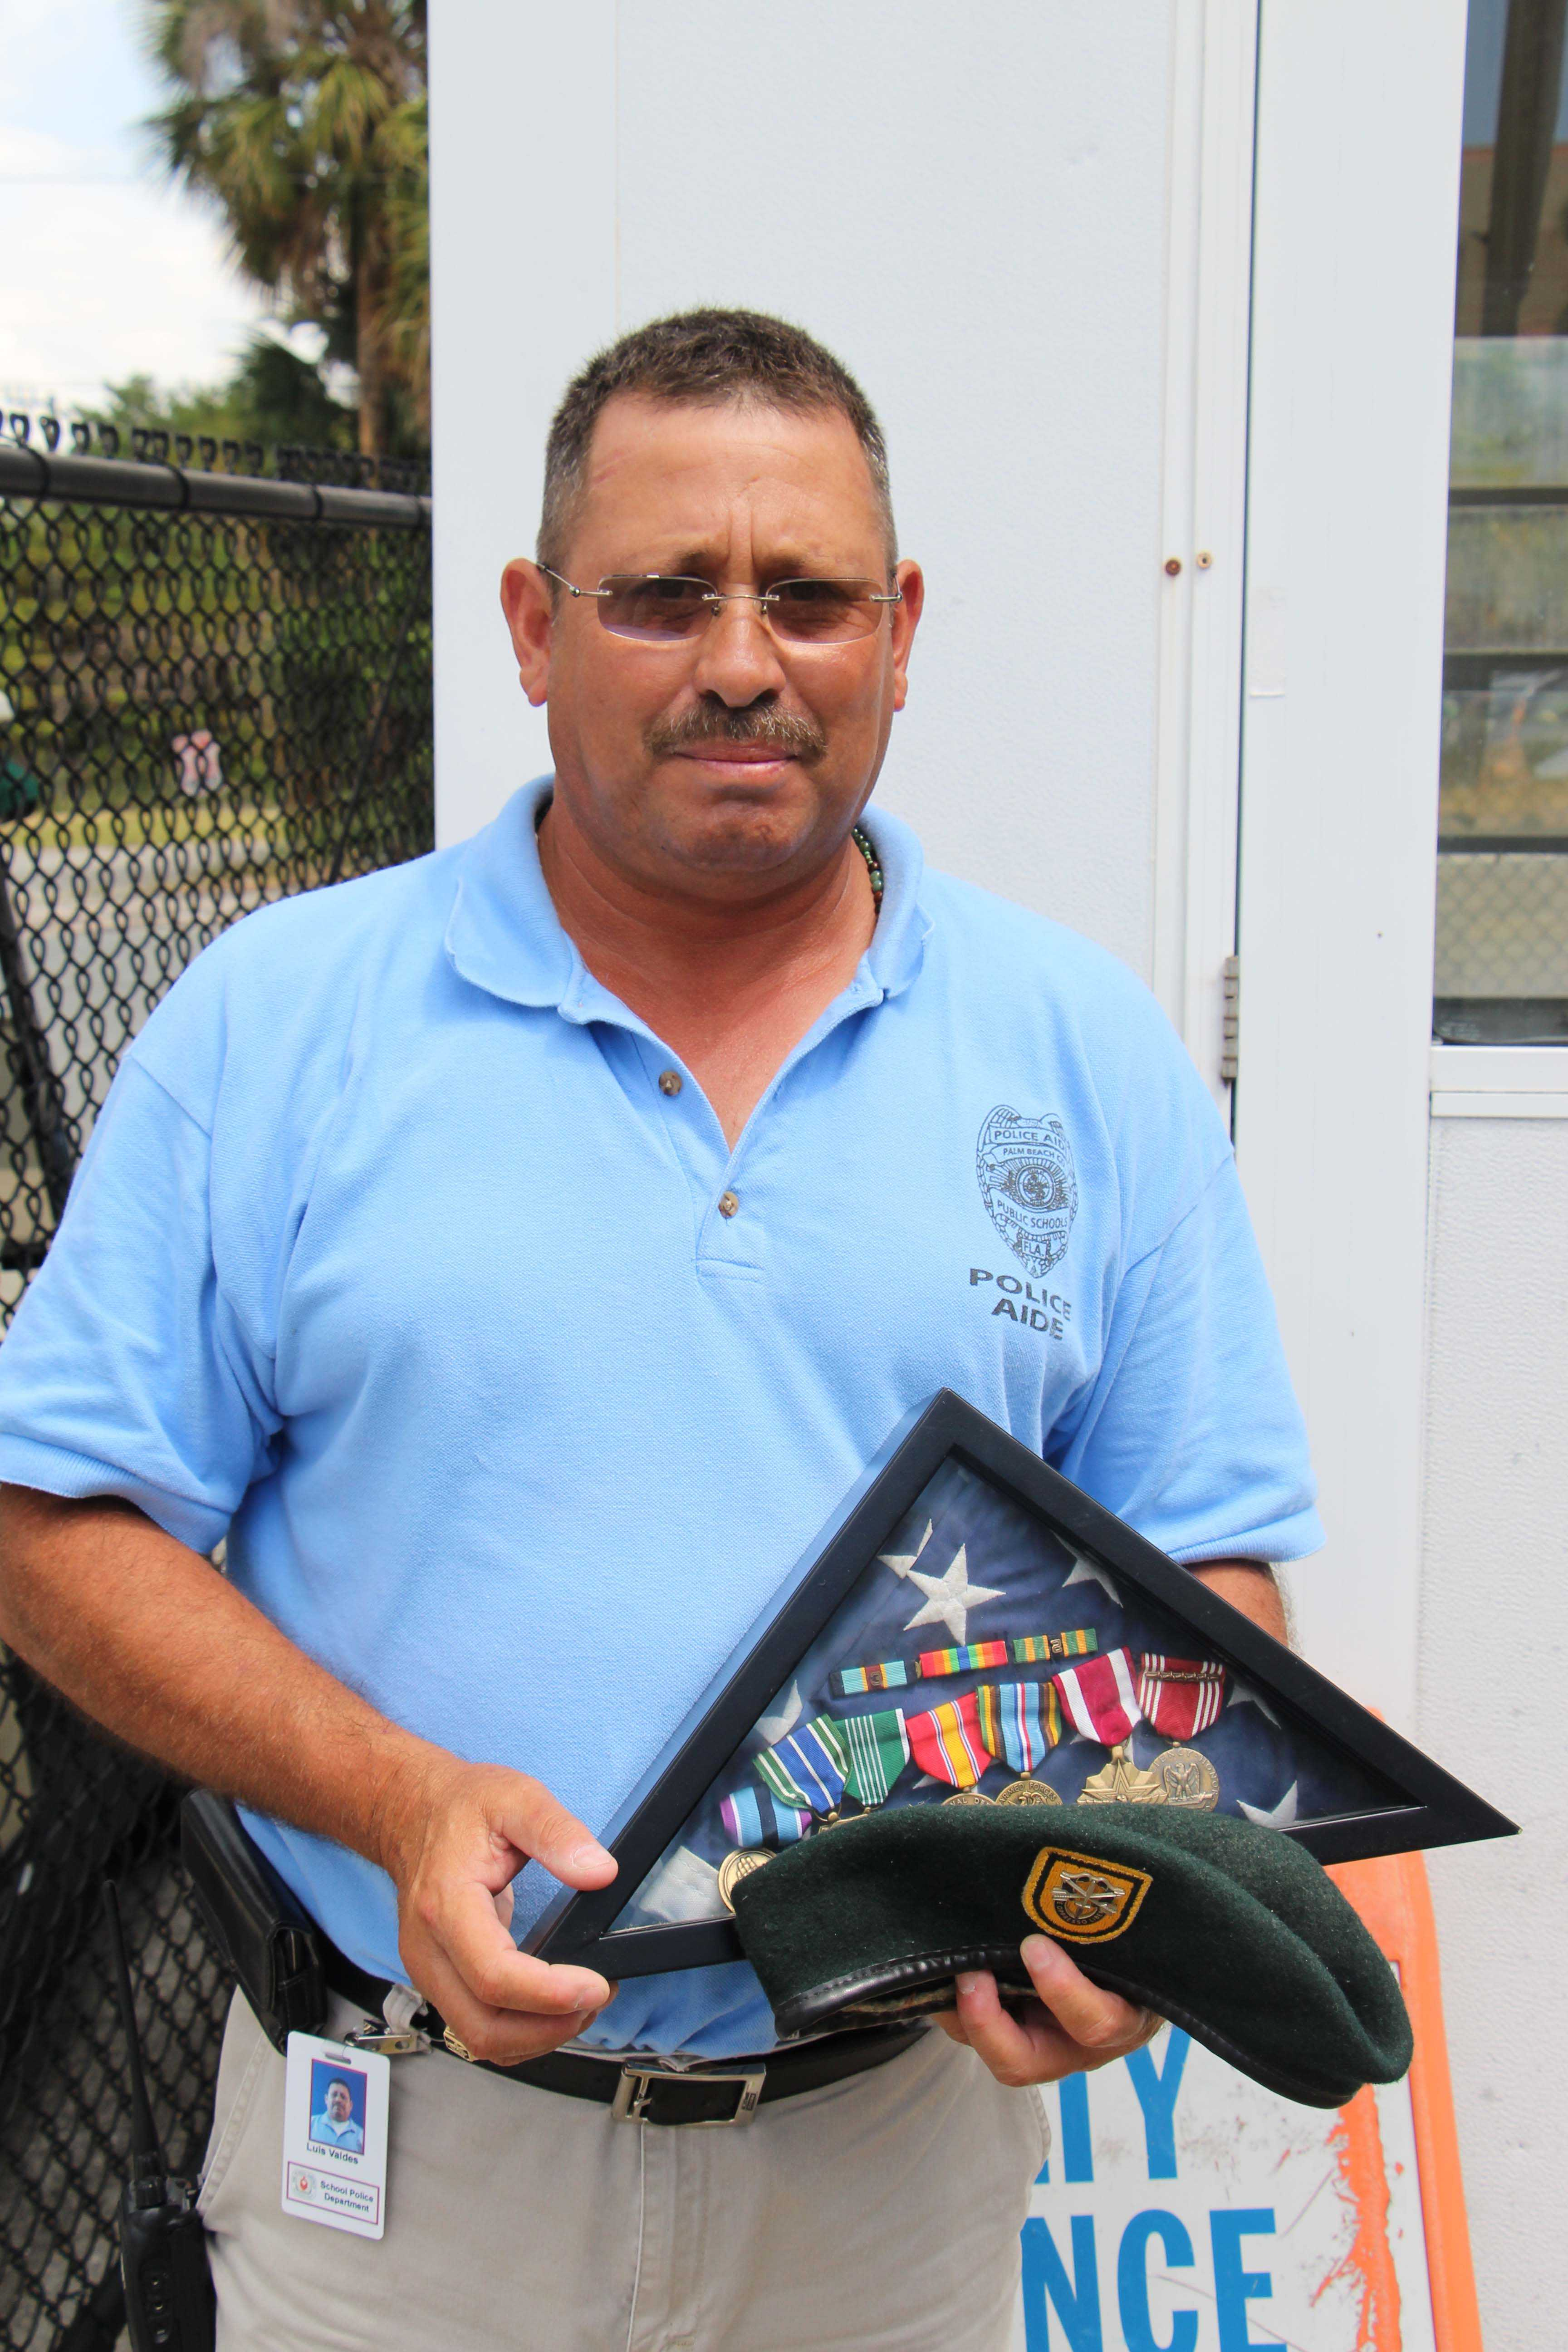 Officer Louis Valdez stands with medals he has received throughout his military service.